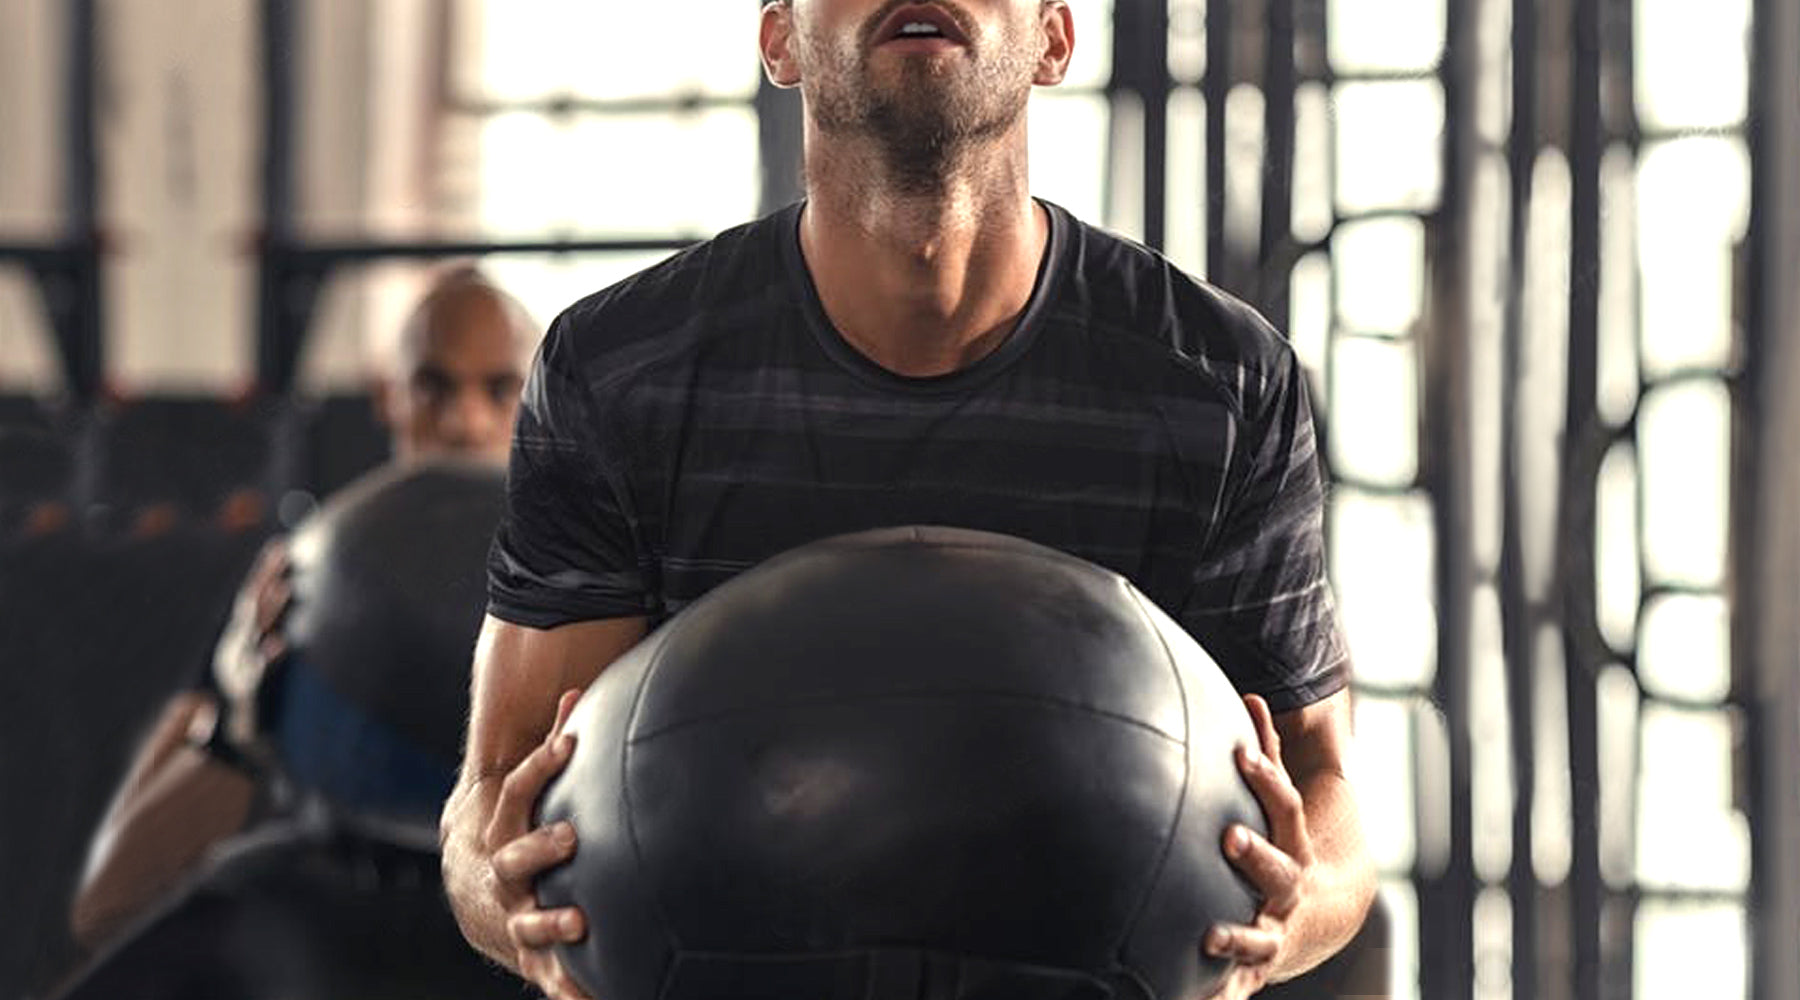 Man in black t-shirt holding medicine ball and exercising his pelvic muscles